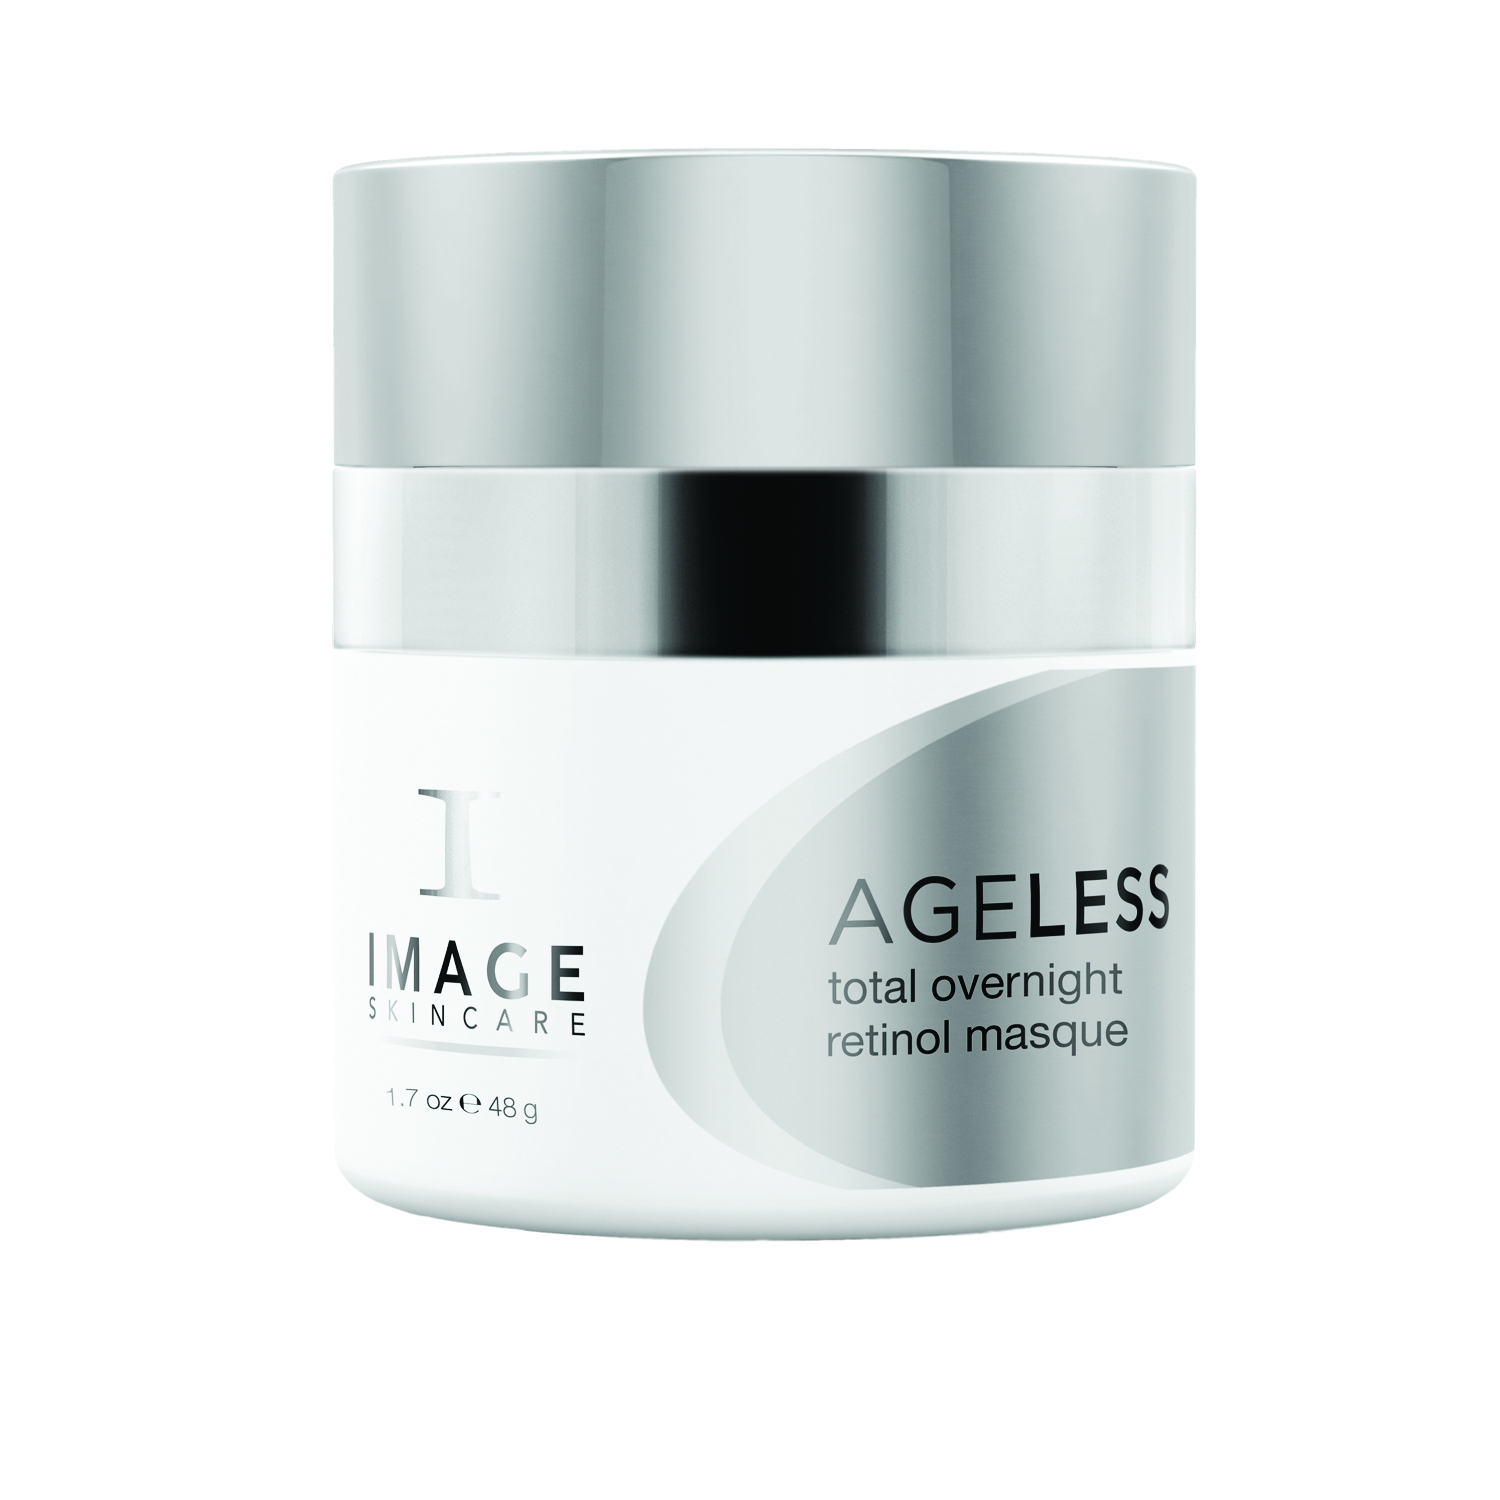 Ageless Total Overnight Retinol Masque The Harley Laser Specialists